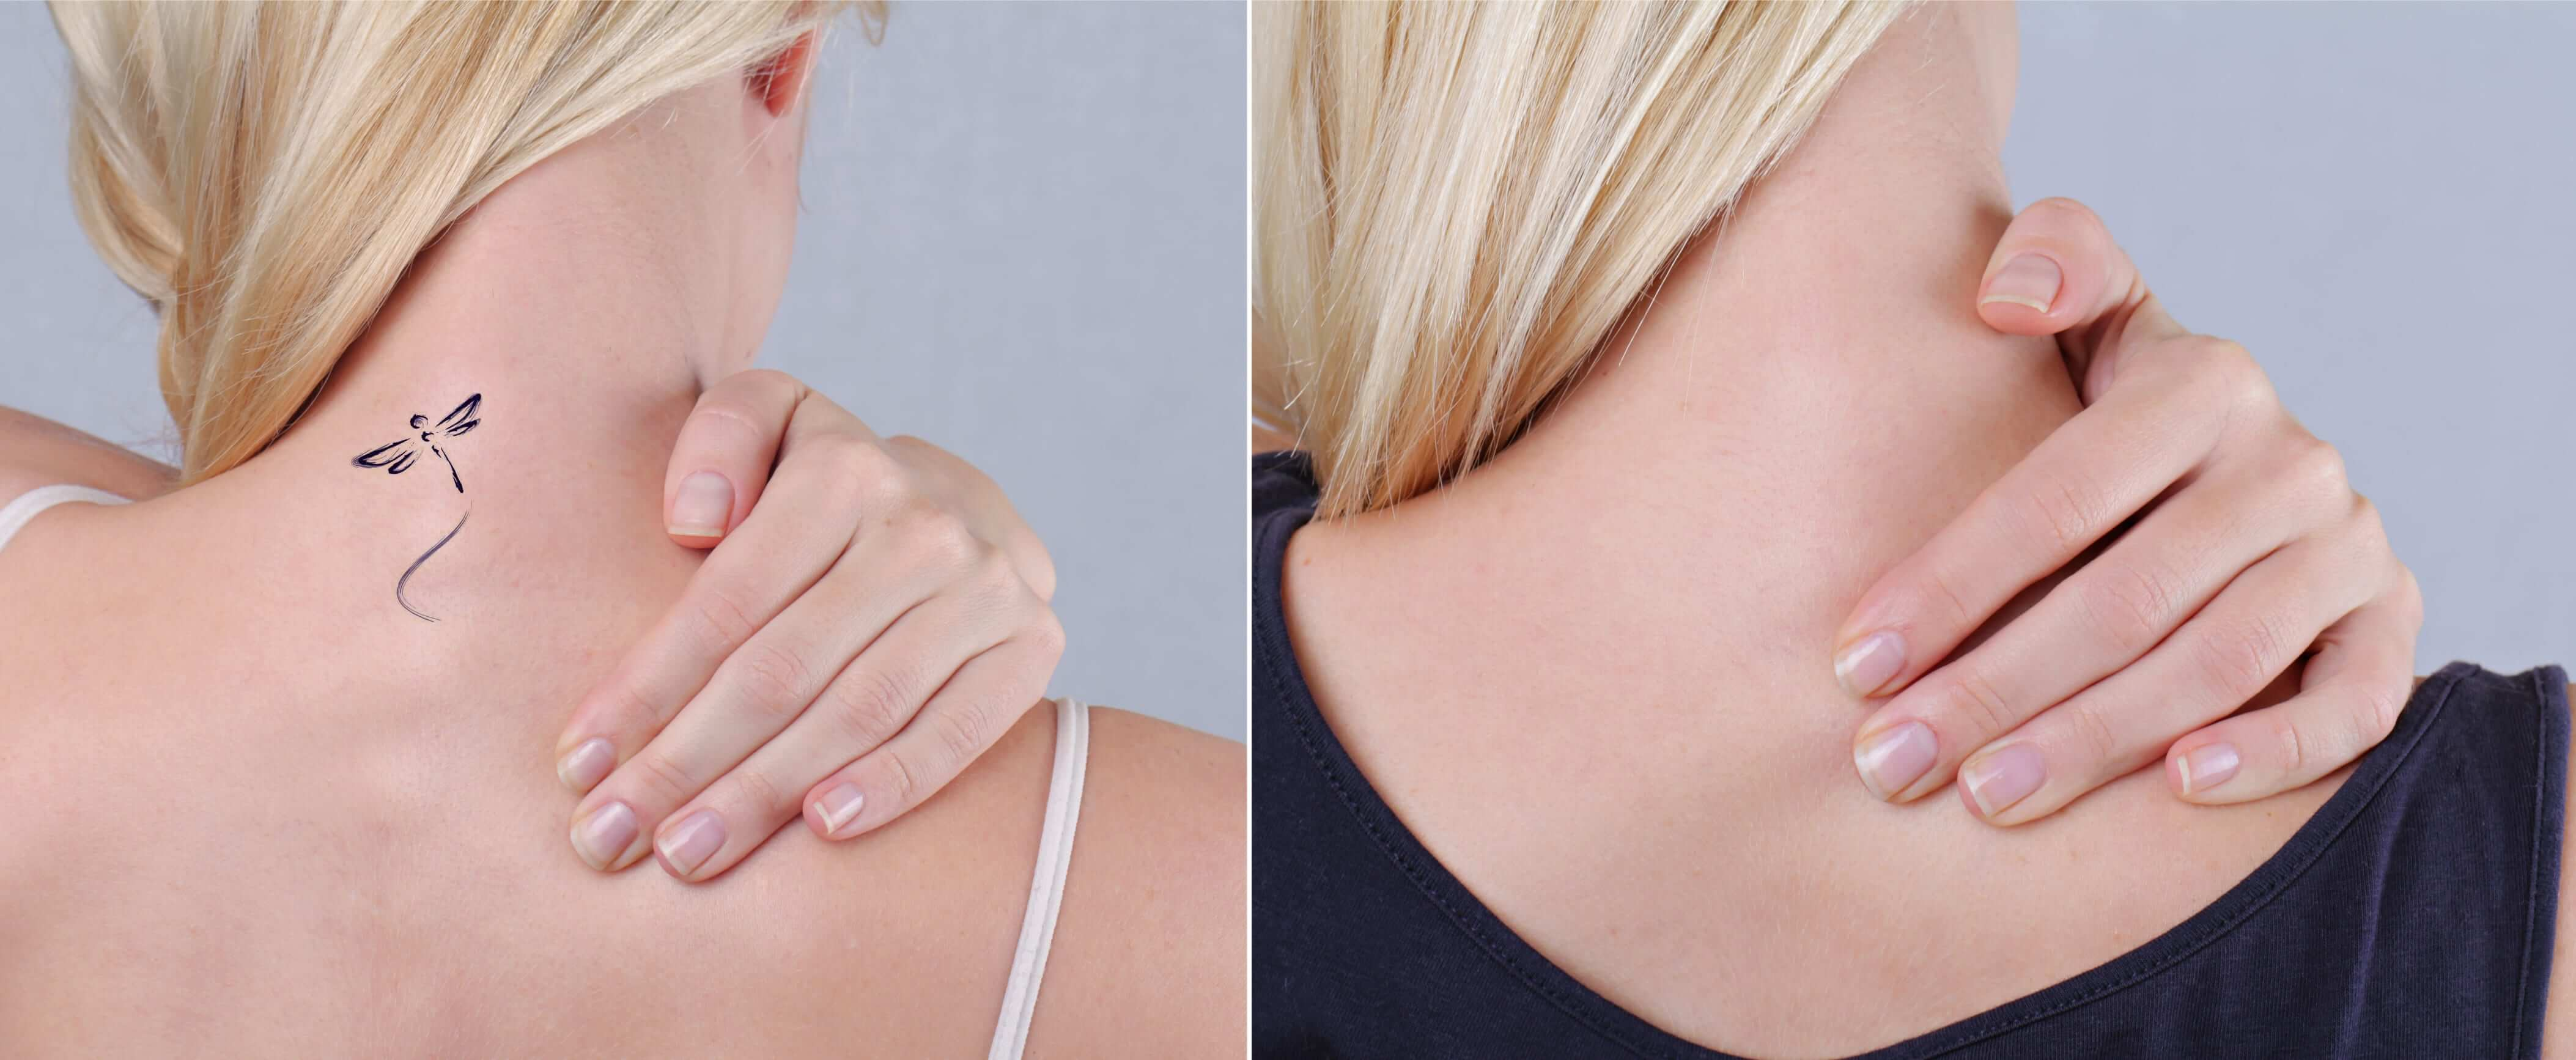 How to get rid of unwanted tattoos for good for Can you get a tattoo before surgery